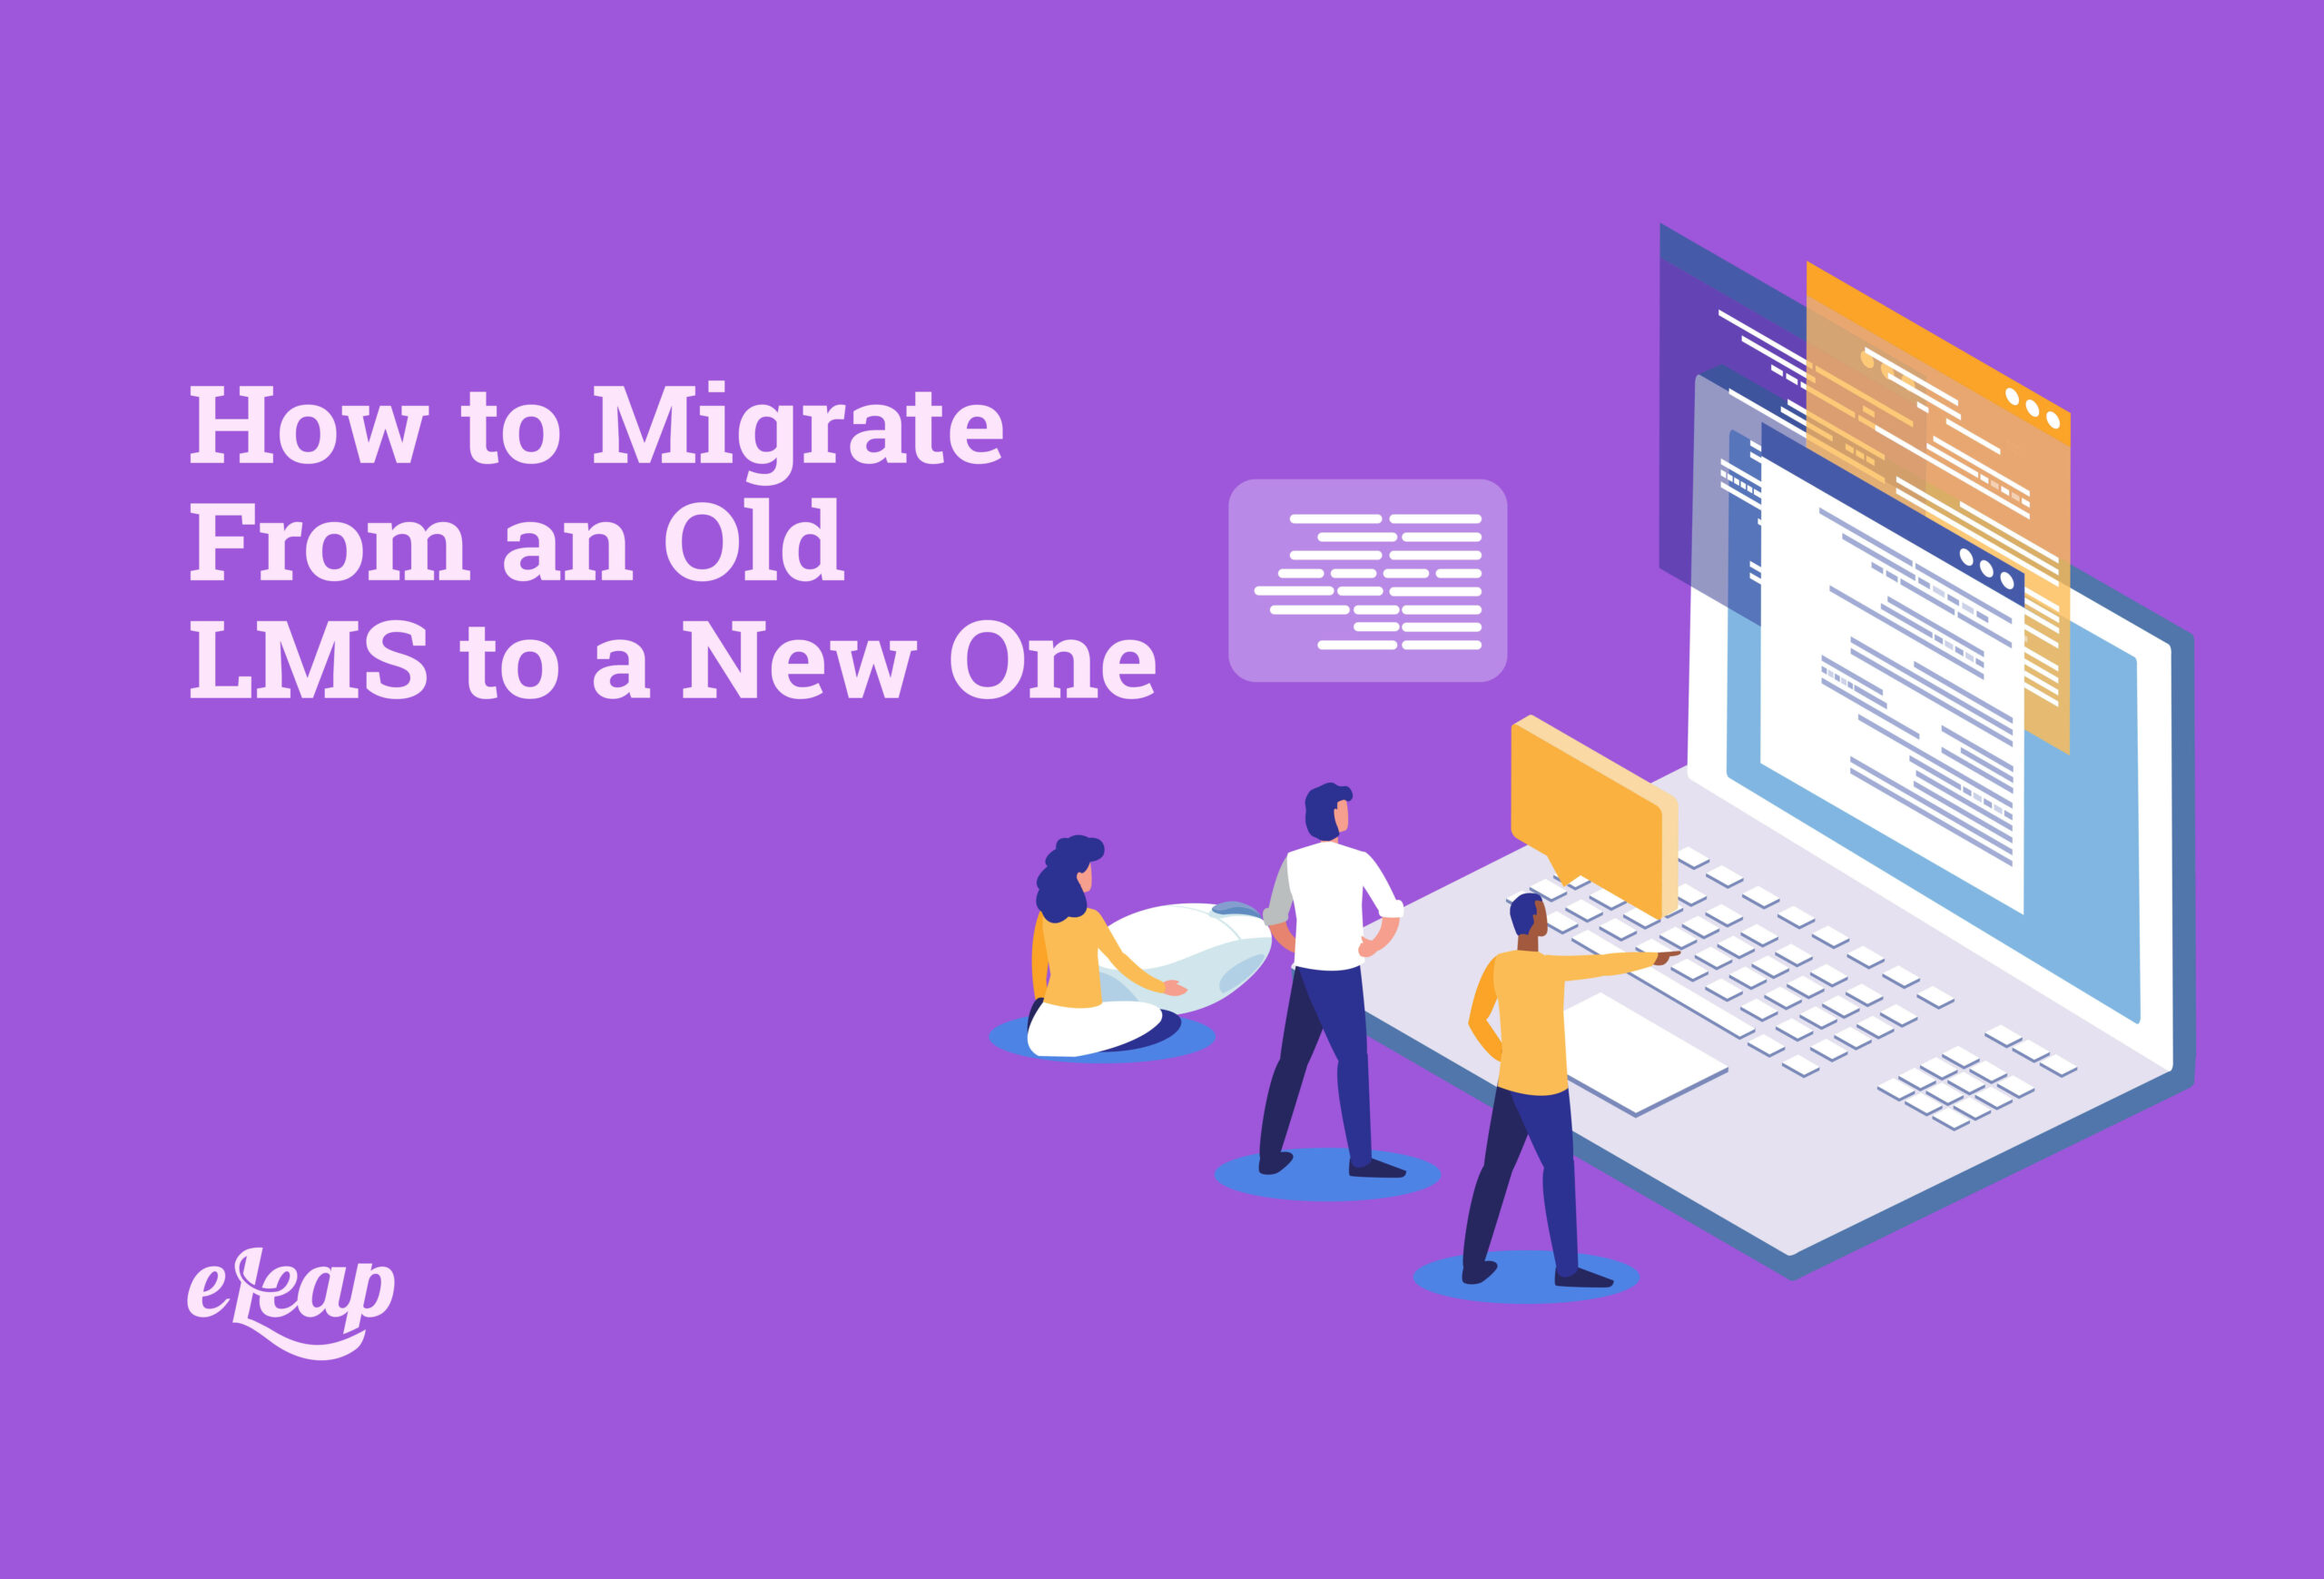 How to Migrate From an Old LMS to a New One